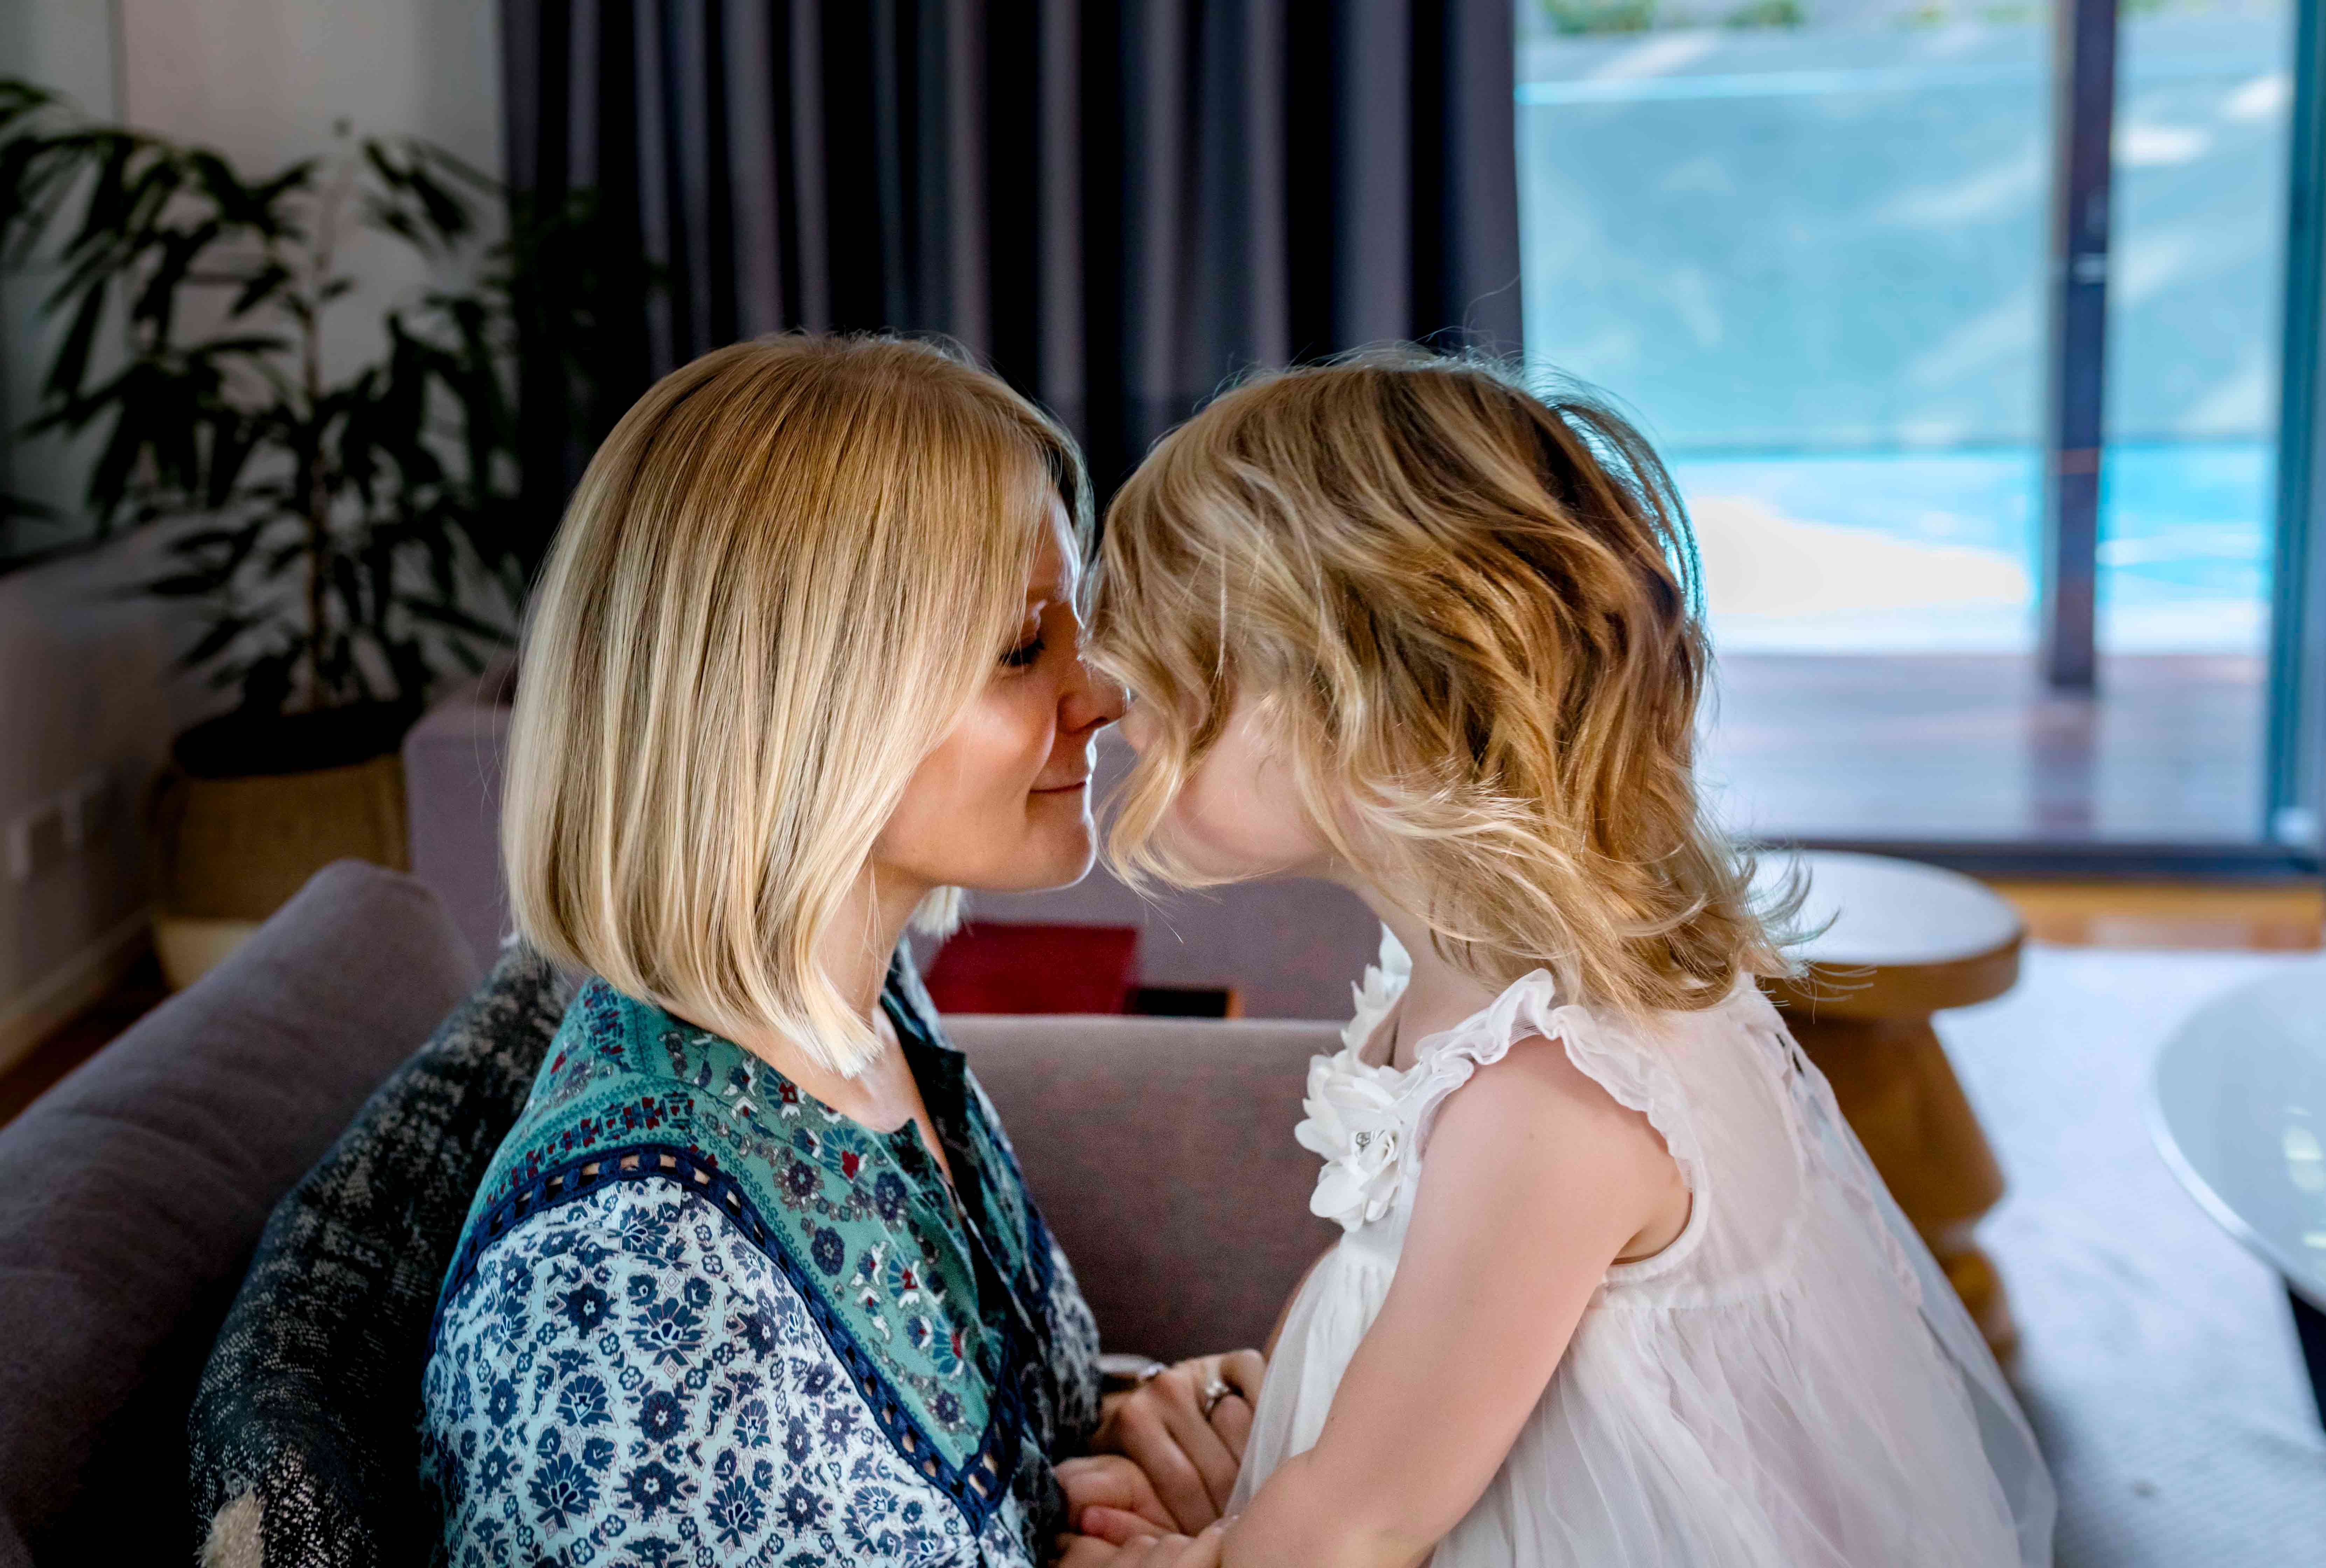 Rachel Bryce From Style Me Now Shares Her Top 5 Style Tips For Mothers